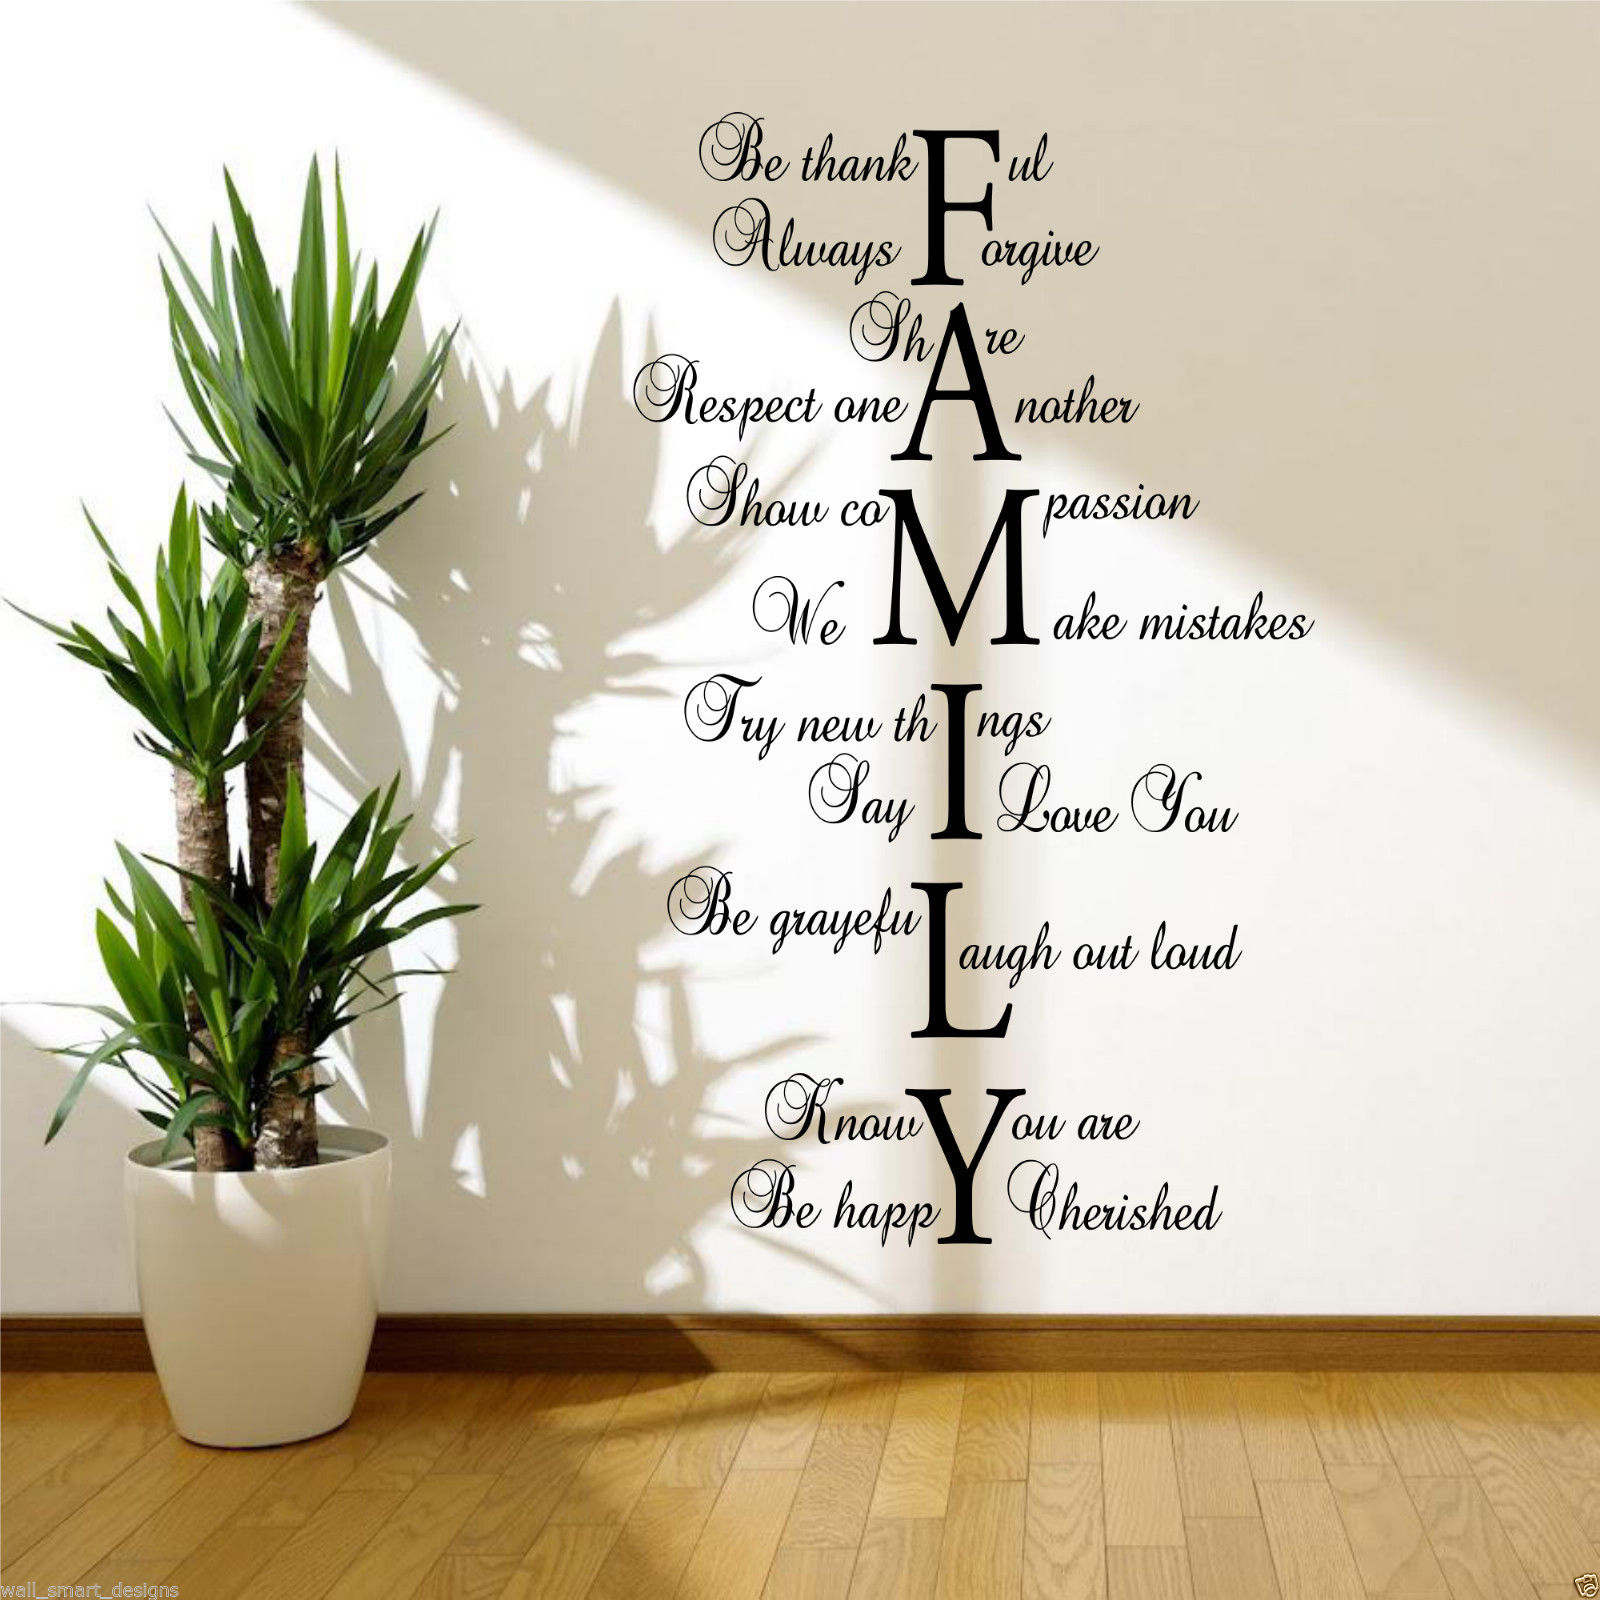 Love Life Family Quotes Unique Family Love Life Wall Art Sticker Quote Room Decal Mural Transfer